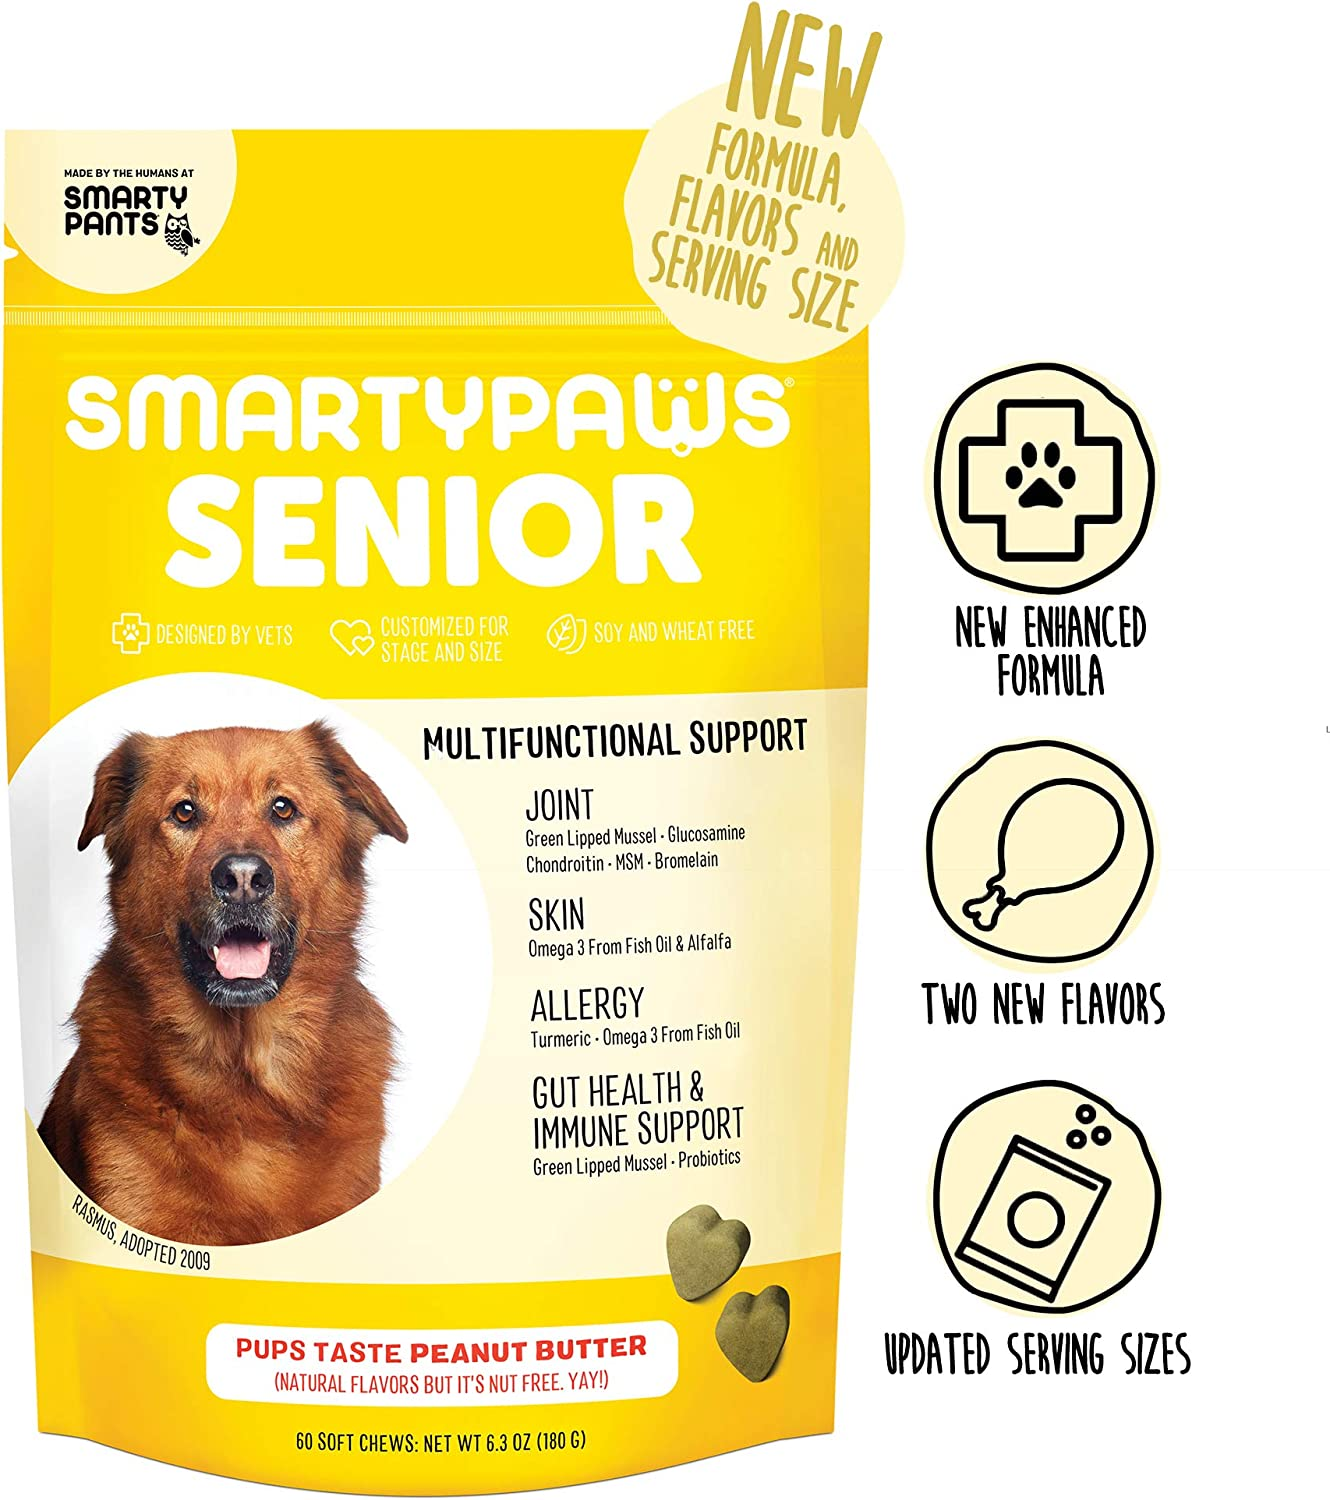 Supplement Dog Chew Glucosamine, Probiotics, Chondroitin, Fish Oil Omega 3, MSM for Hip and Joint Support, Organic Turmeric by Smarty Paws 60 Ct Packaging May Vary